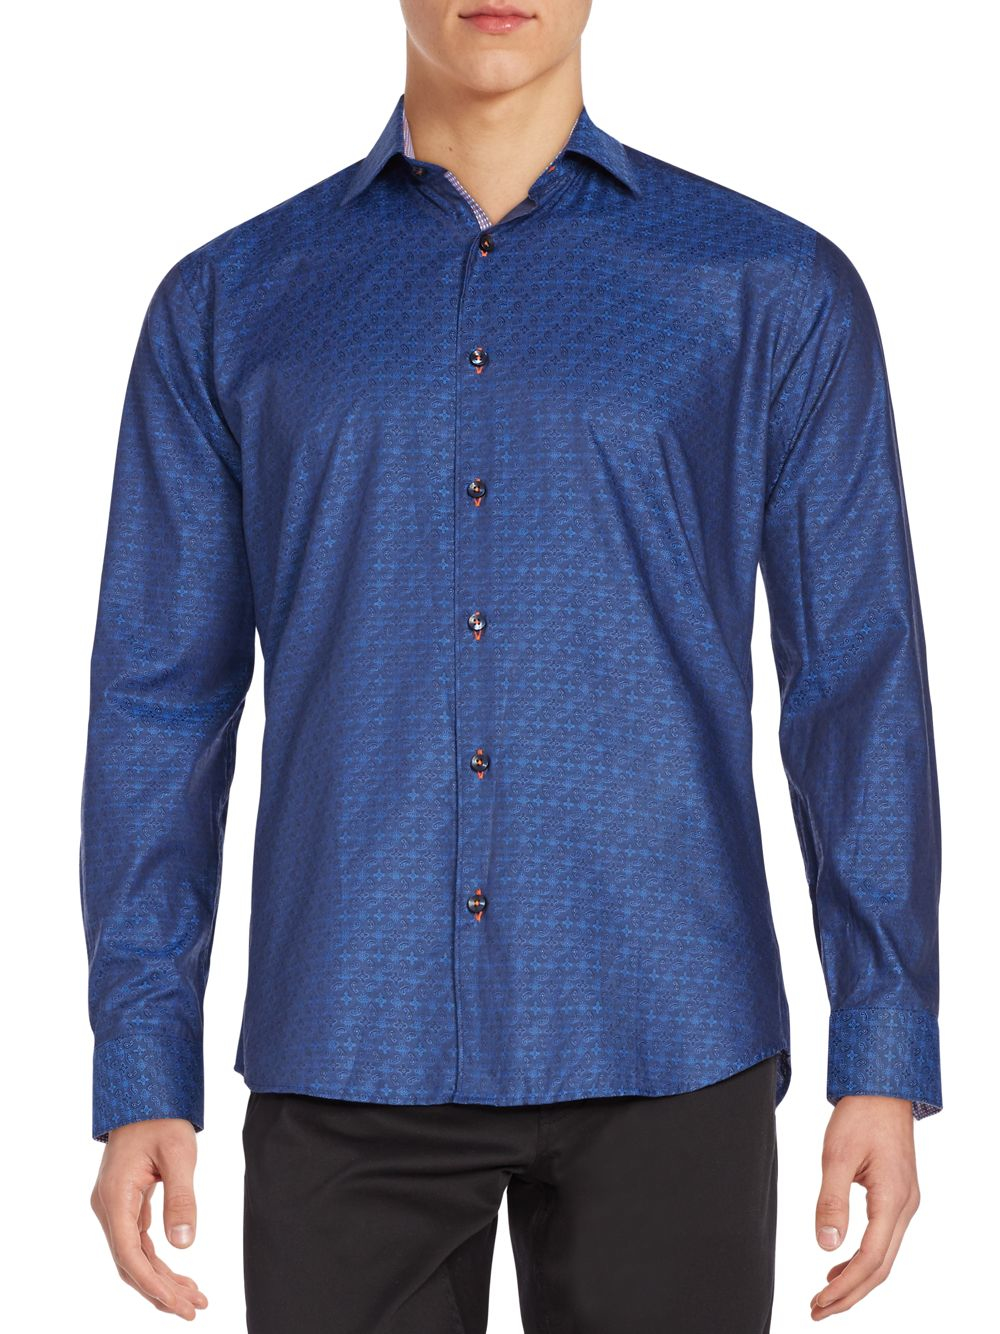 Jared lang printed cotton button down shirt in blue for for Cotton button down shirts men